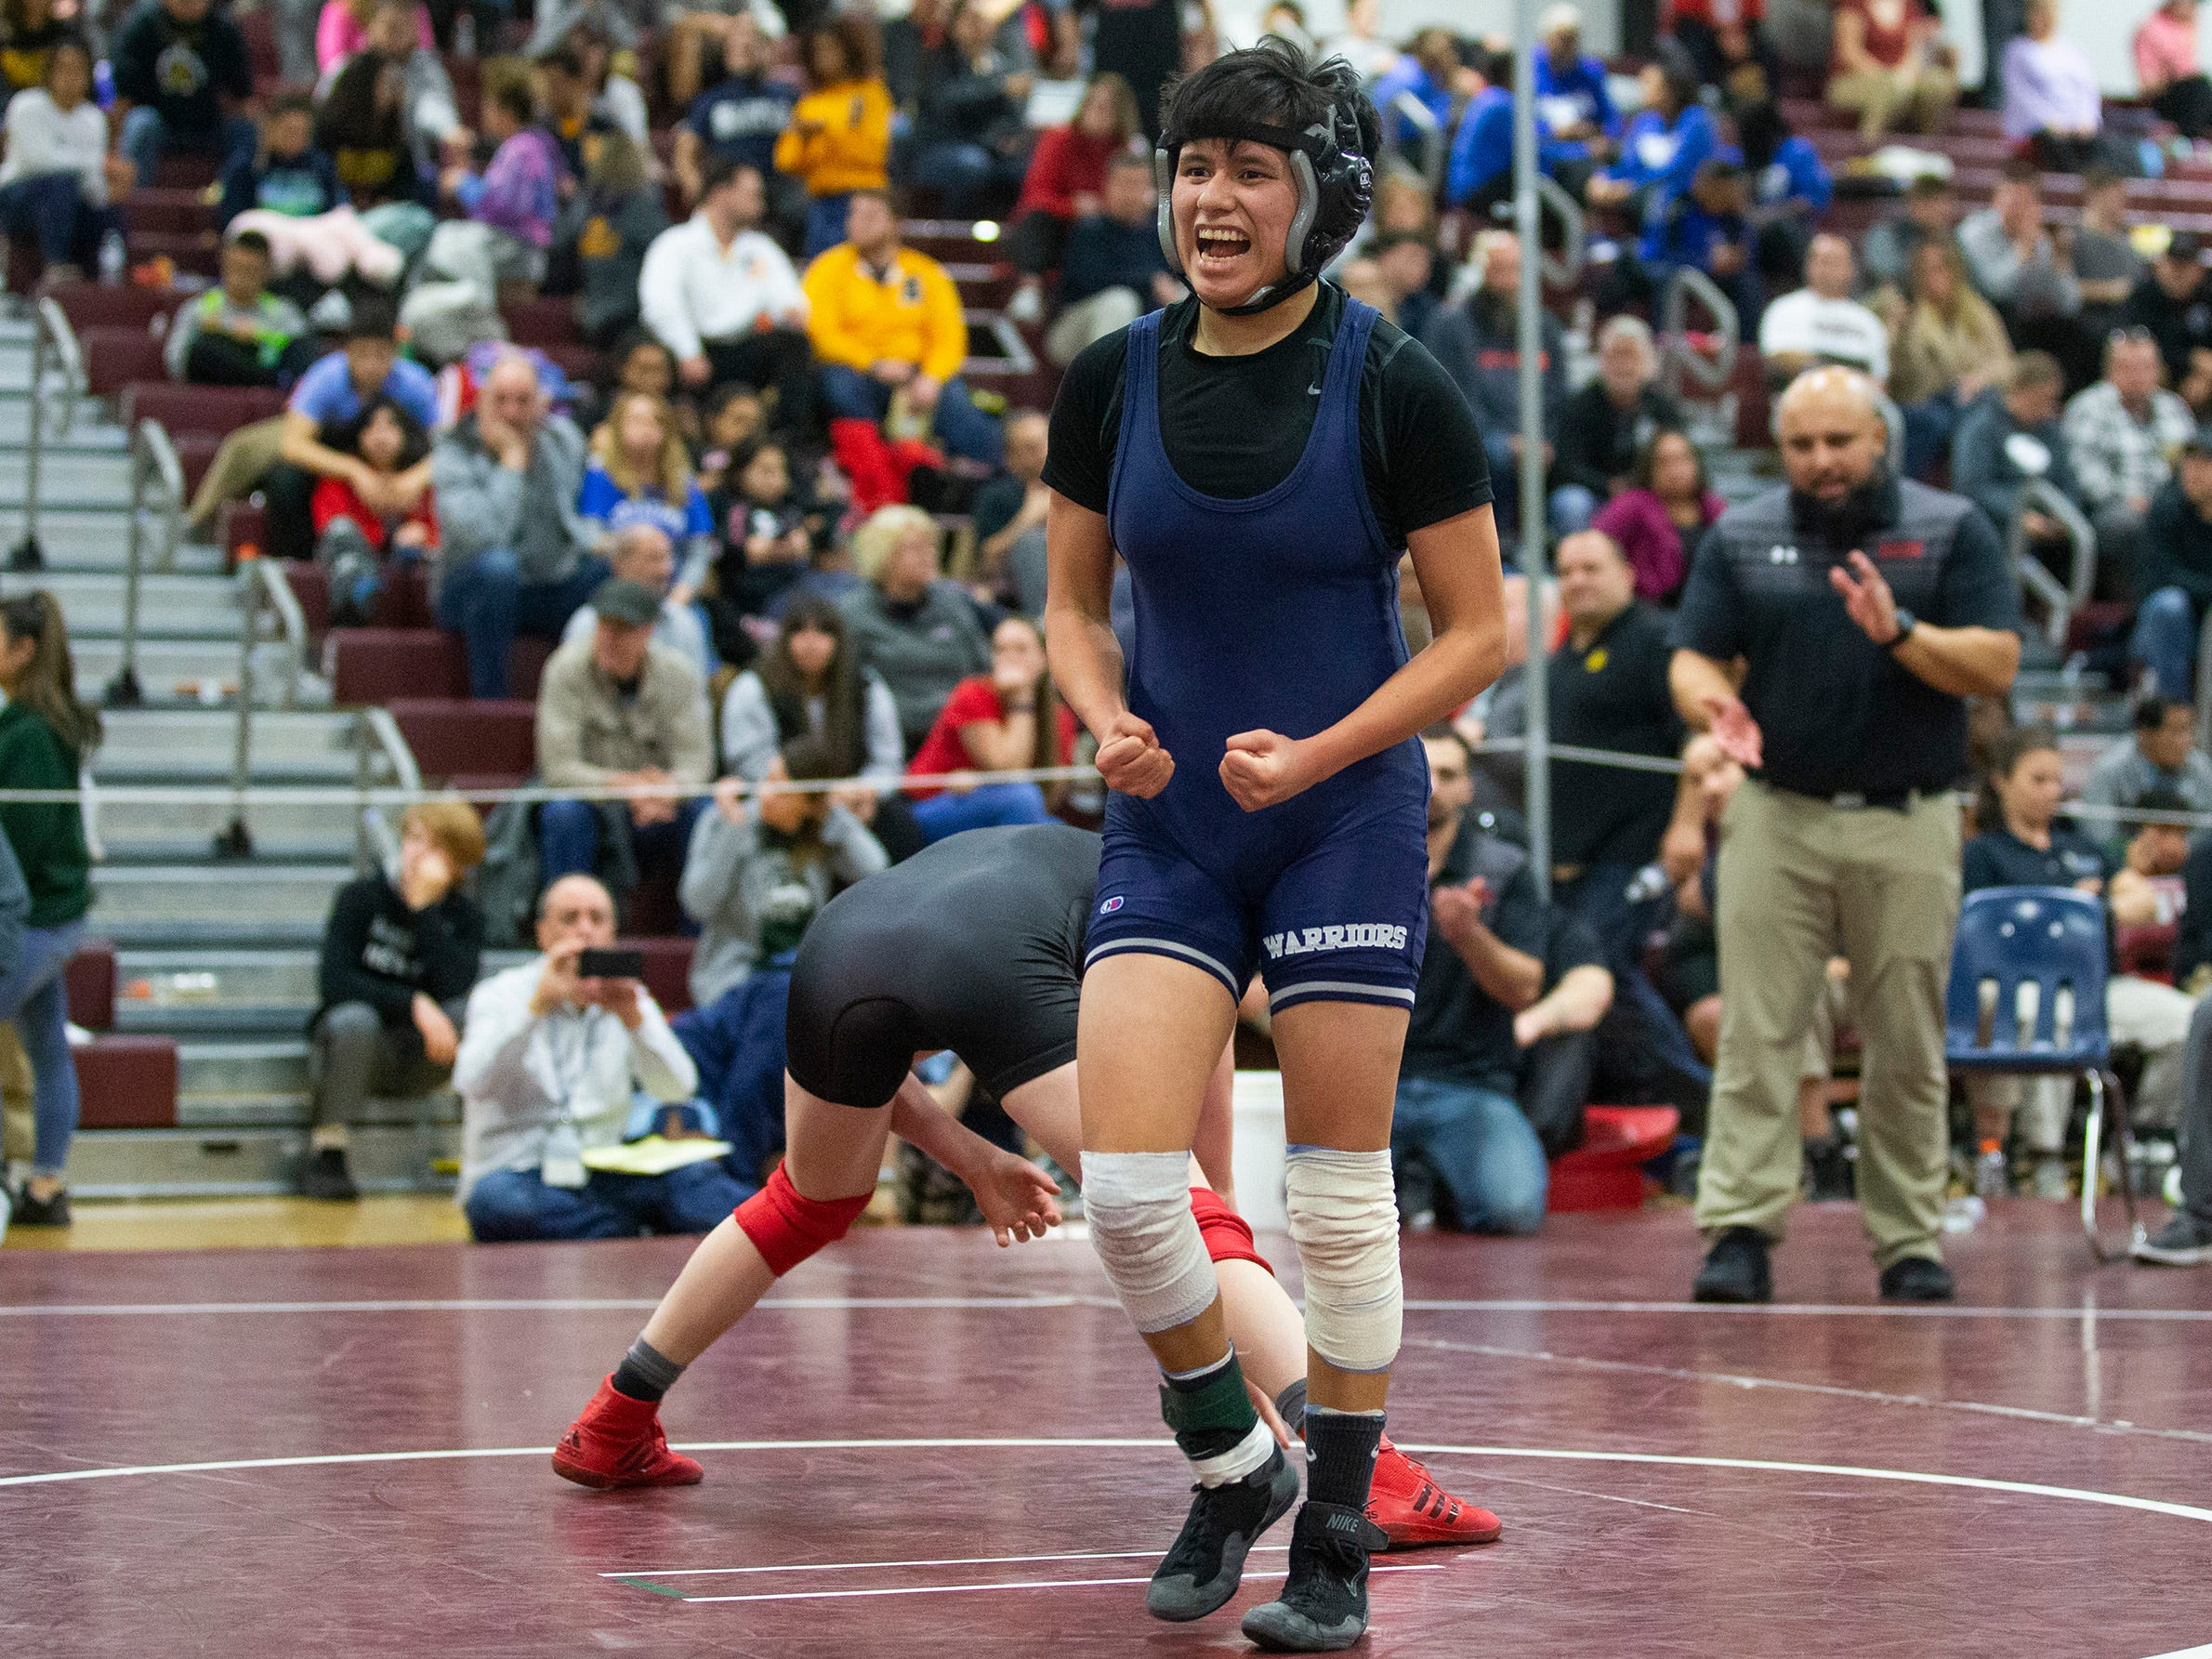 Manasquan's Bella Serrano celebrates after win over  Kingsway's Mia Bruno in their 111 lbs. bout. NJSIAA Girls Region Wrestling at Red Bank Regional High School in Red Bank NJ on February 17, 2019. NJSIAA Girls Region Wrestling at Red Bank Regional High School in Red Bank NJ on February 17, 2019.